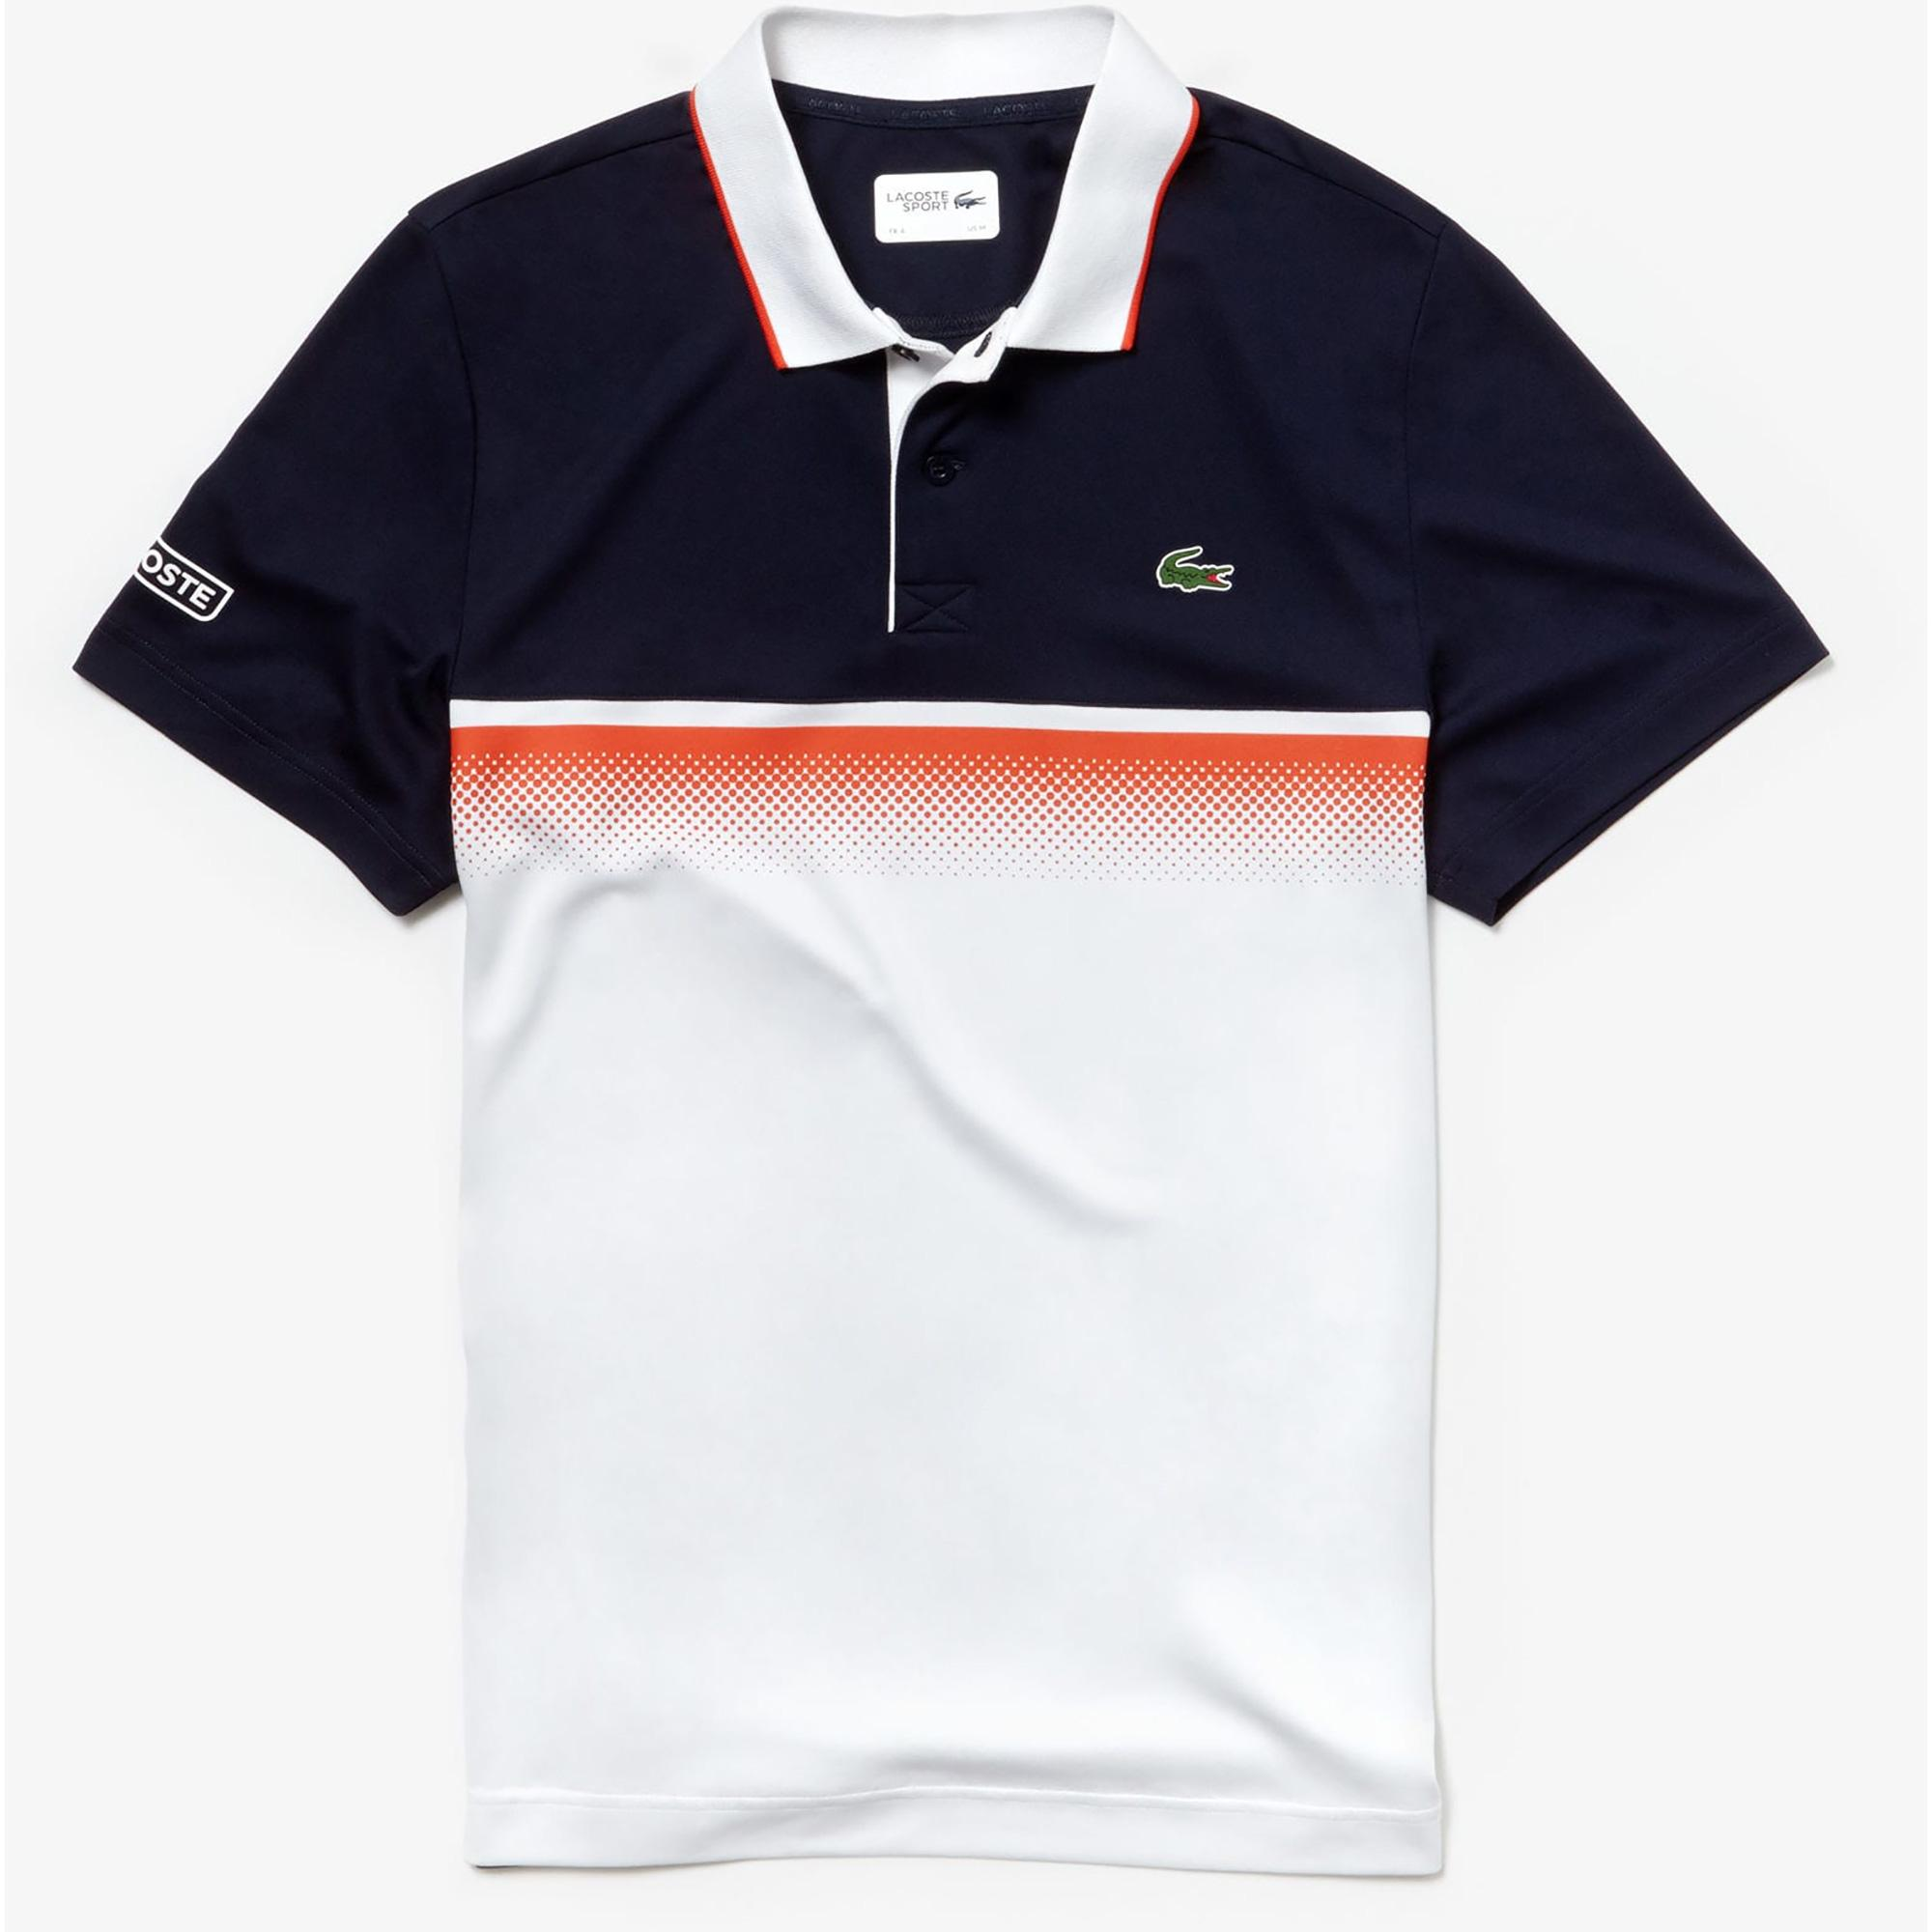 484add9c Lacoste Mens Shaded Colourblock Technical Piqué Polo - Navy Blue/White/Red